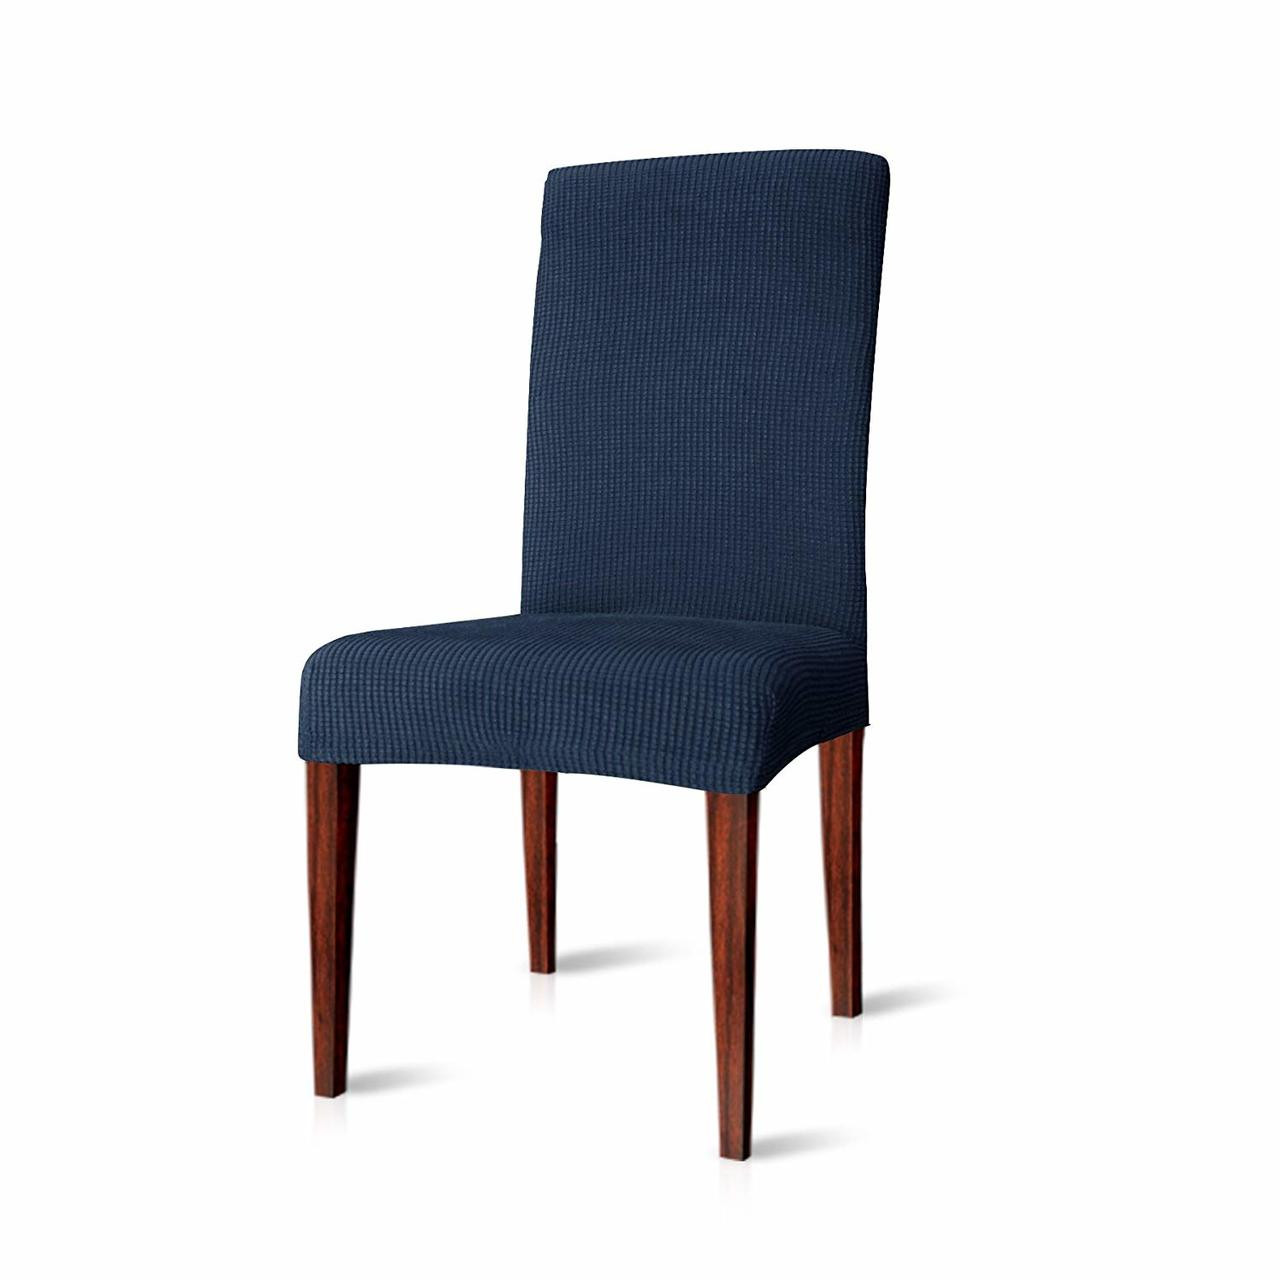 Dining Chair Slipcover Elegant Knitting Jacquard Box Cushion Dining Chair Slipcover Dark Blue